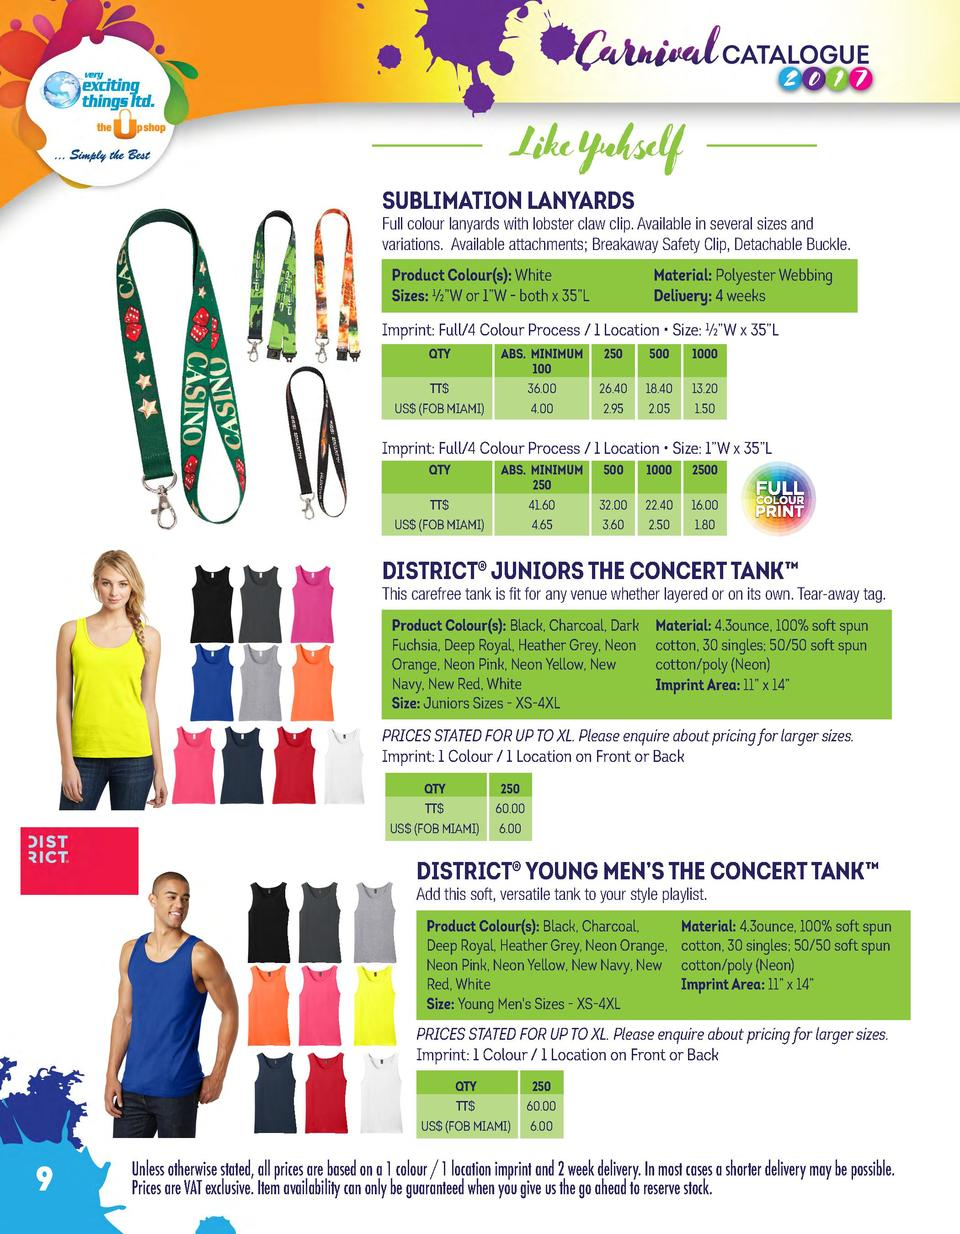 Like Yuhself SUBLIMATION LANYARDS  Full colour lanyards with lobster claw clip. Available in several sizes and variations....